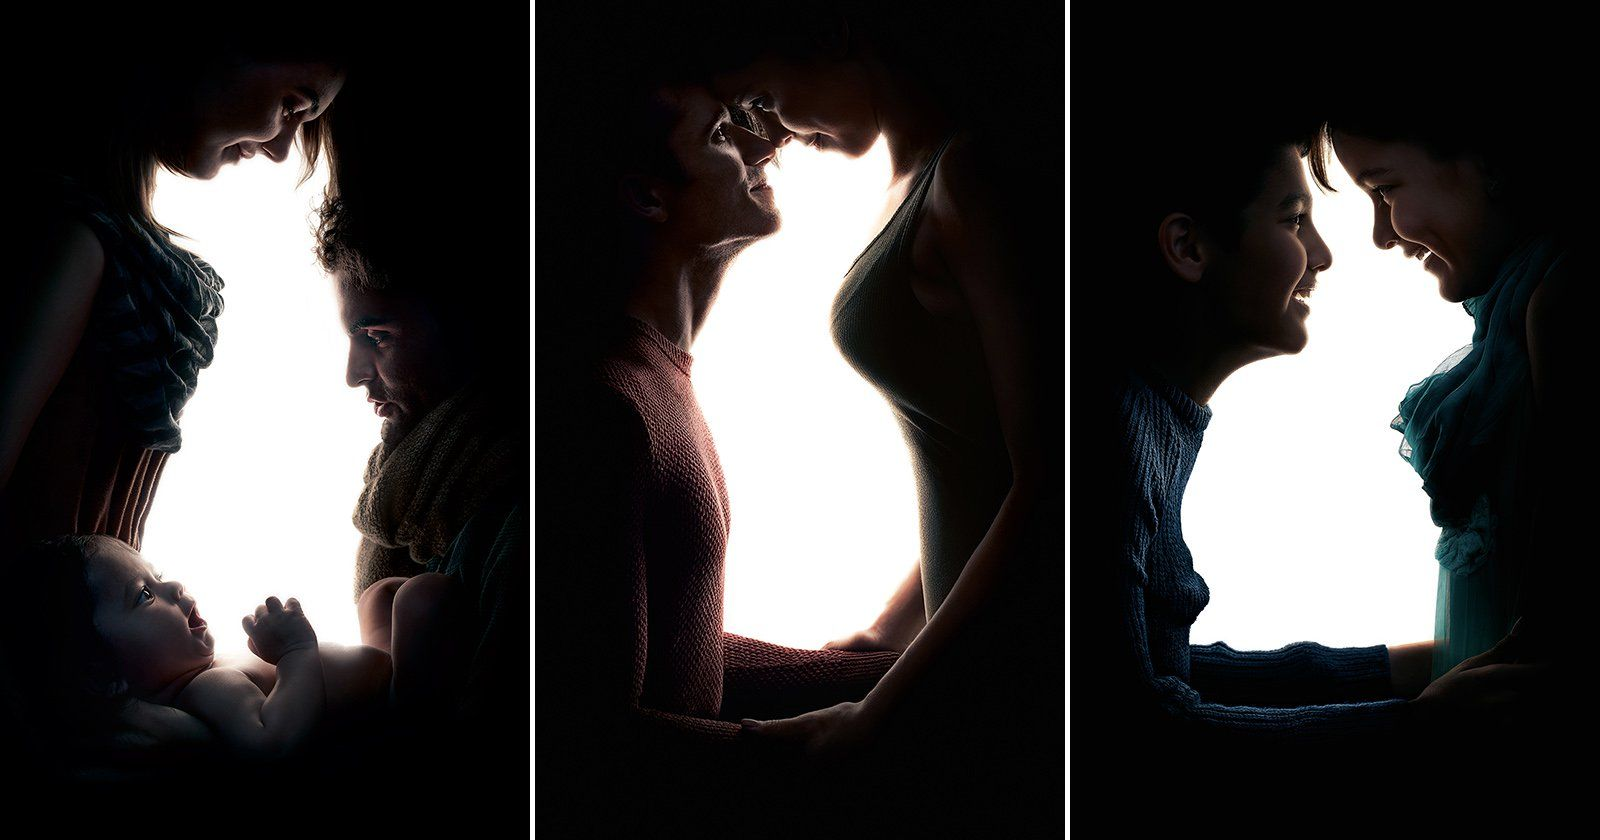 These Creative Photos Use Optical Illusions to Promote Pet Adoption #petadoption